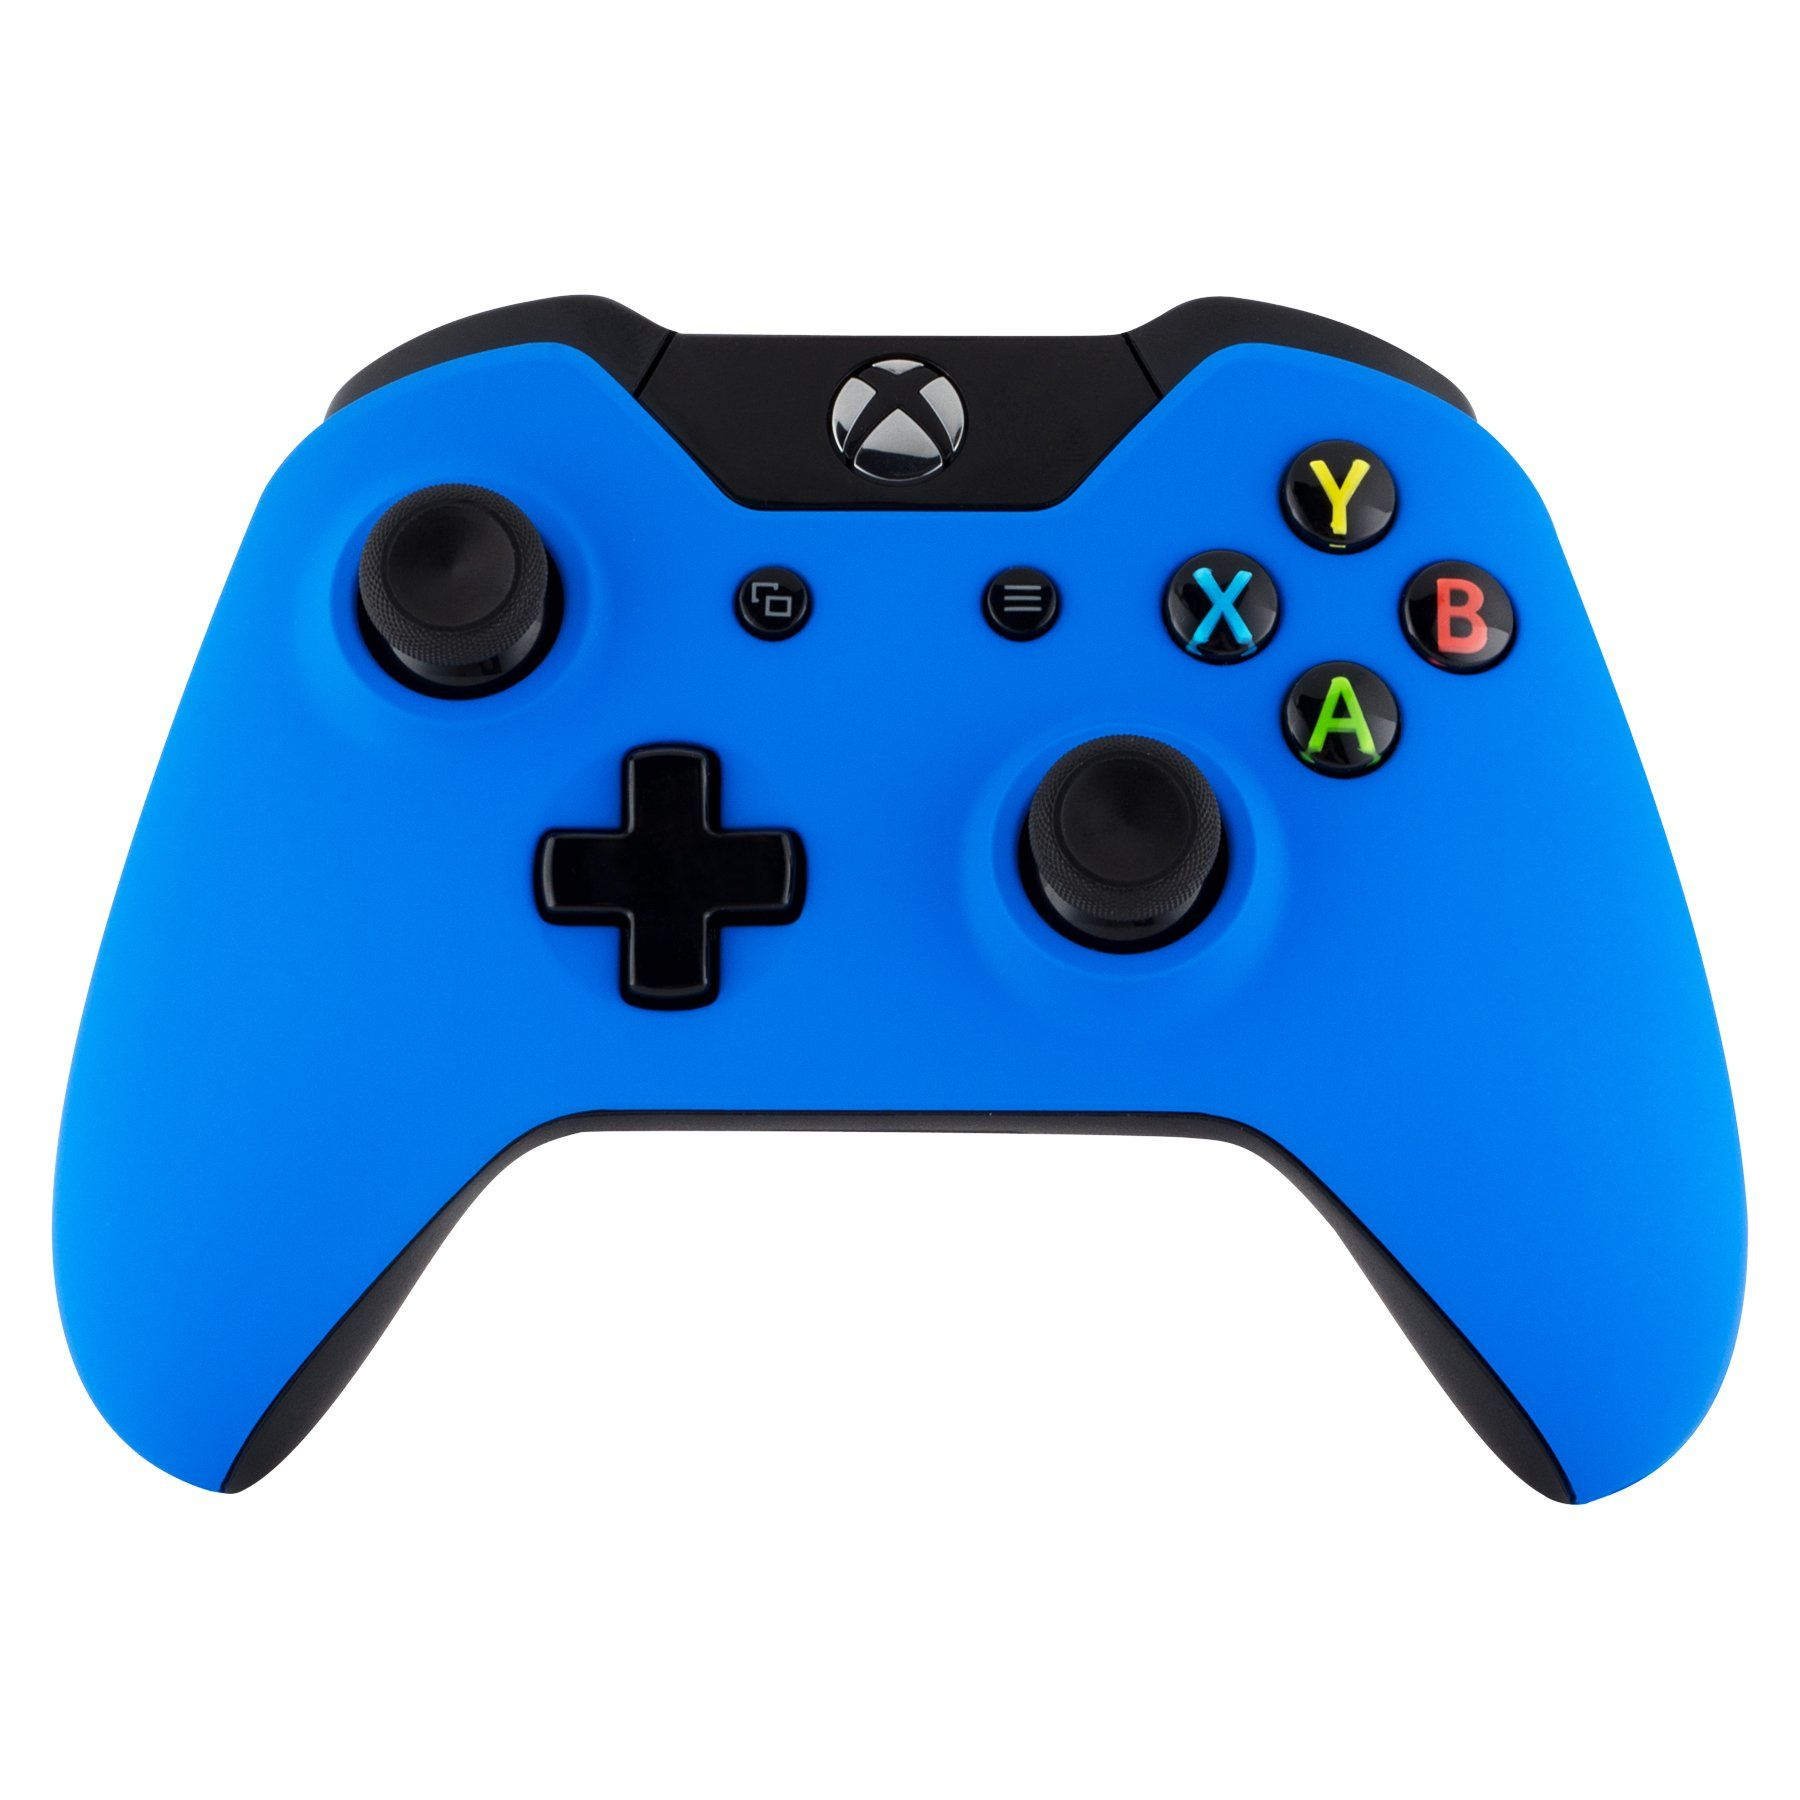 Extremerate Blue Soft Touch Front Shell Face Plate With Left Right Panel Handle Side Rails For Xbox One Standard And W 3 5mm Xbox One Xbox One Controller Xbox